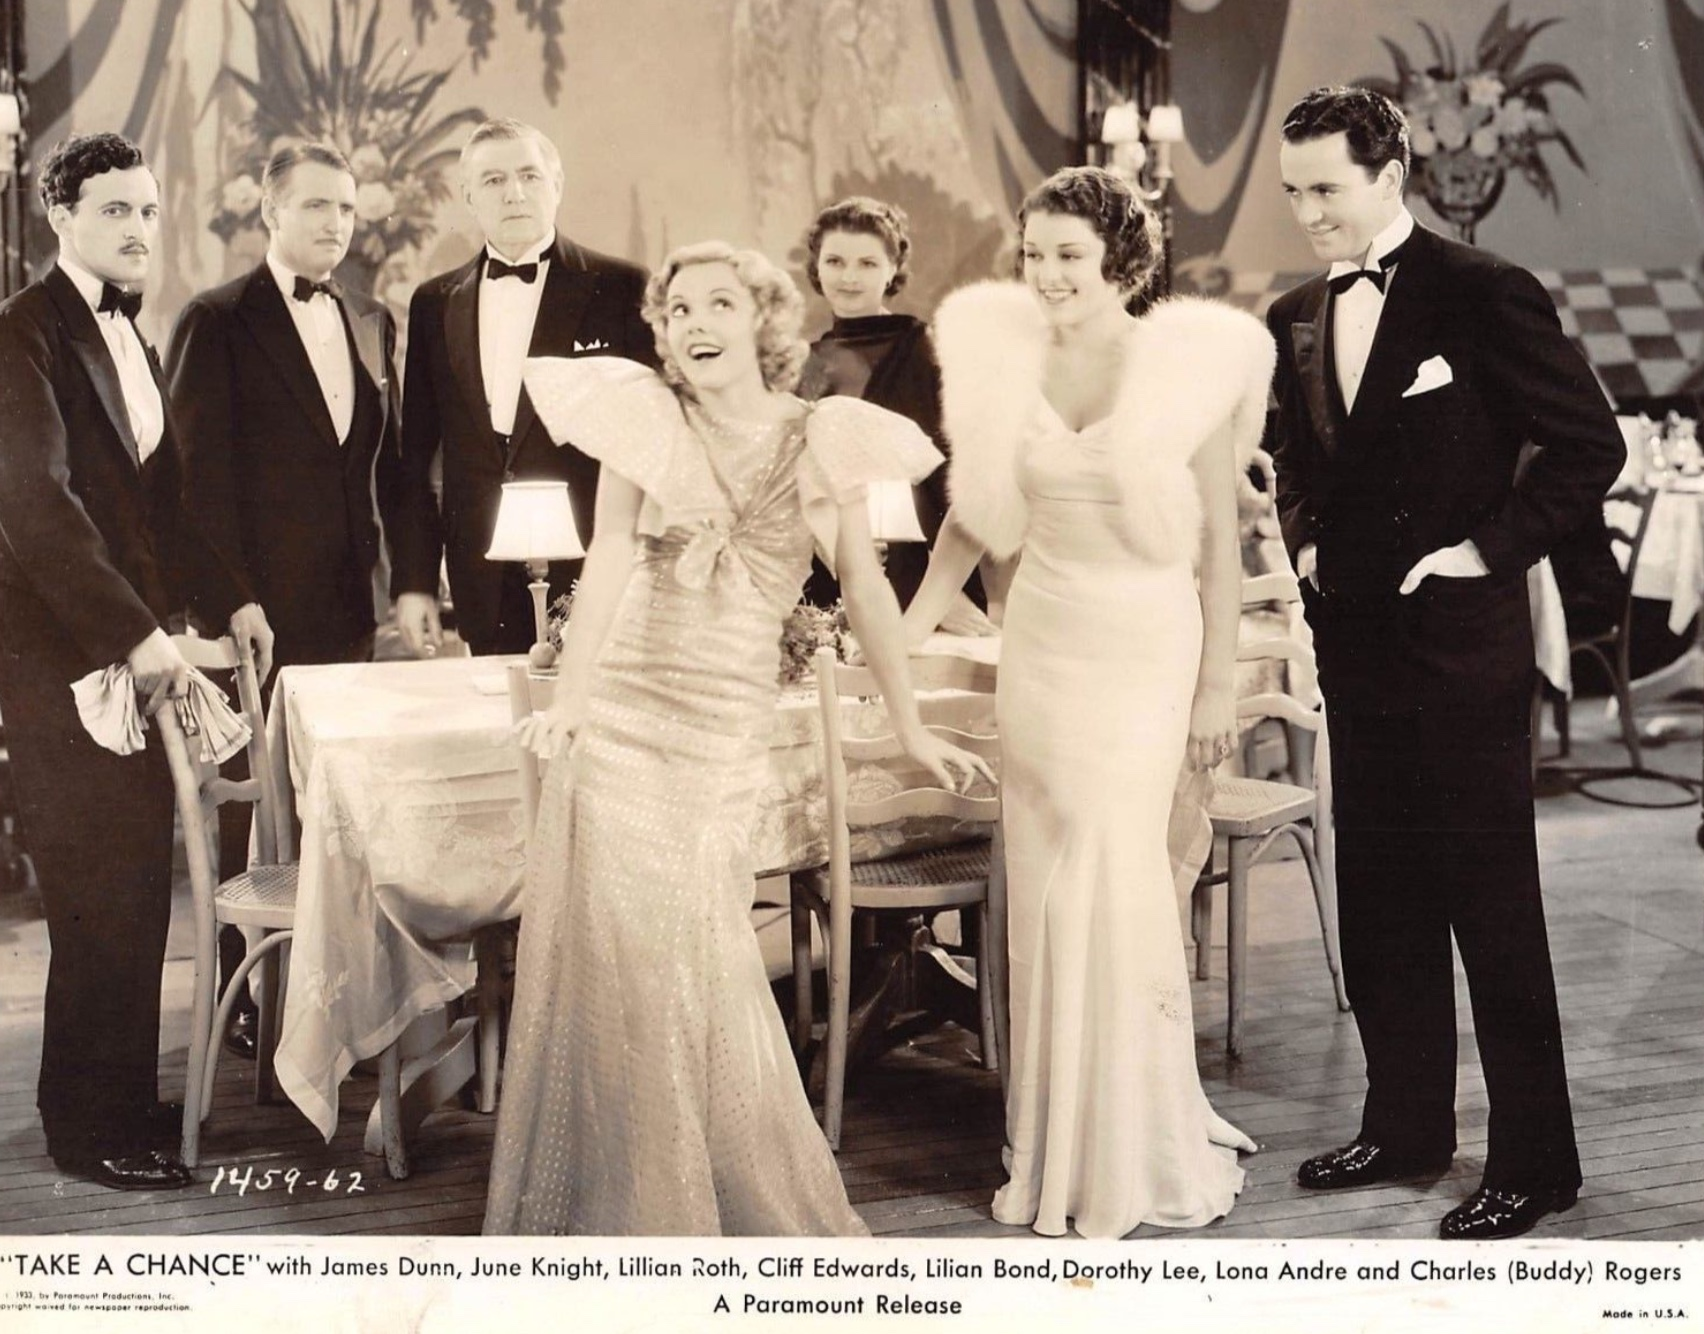 Lilian Bond, Robert Gleckler, Dorothy Lee, Charles 'Buddy' Rogers, and Lillian Roth in Take a Chance (1933)